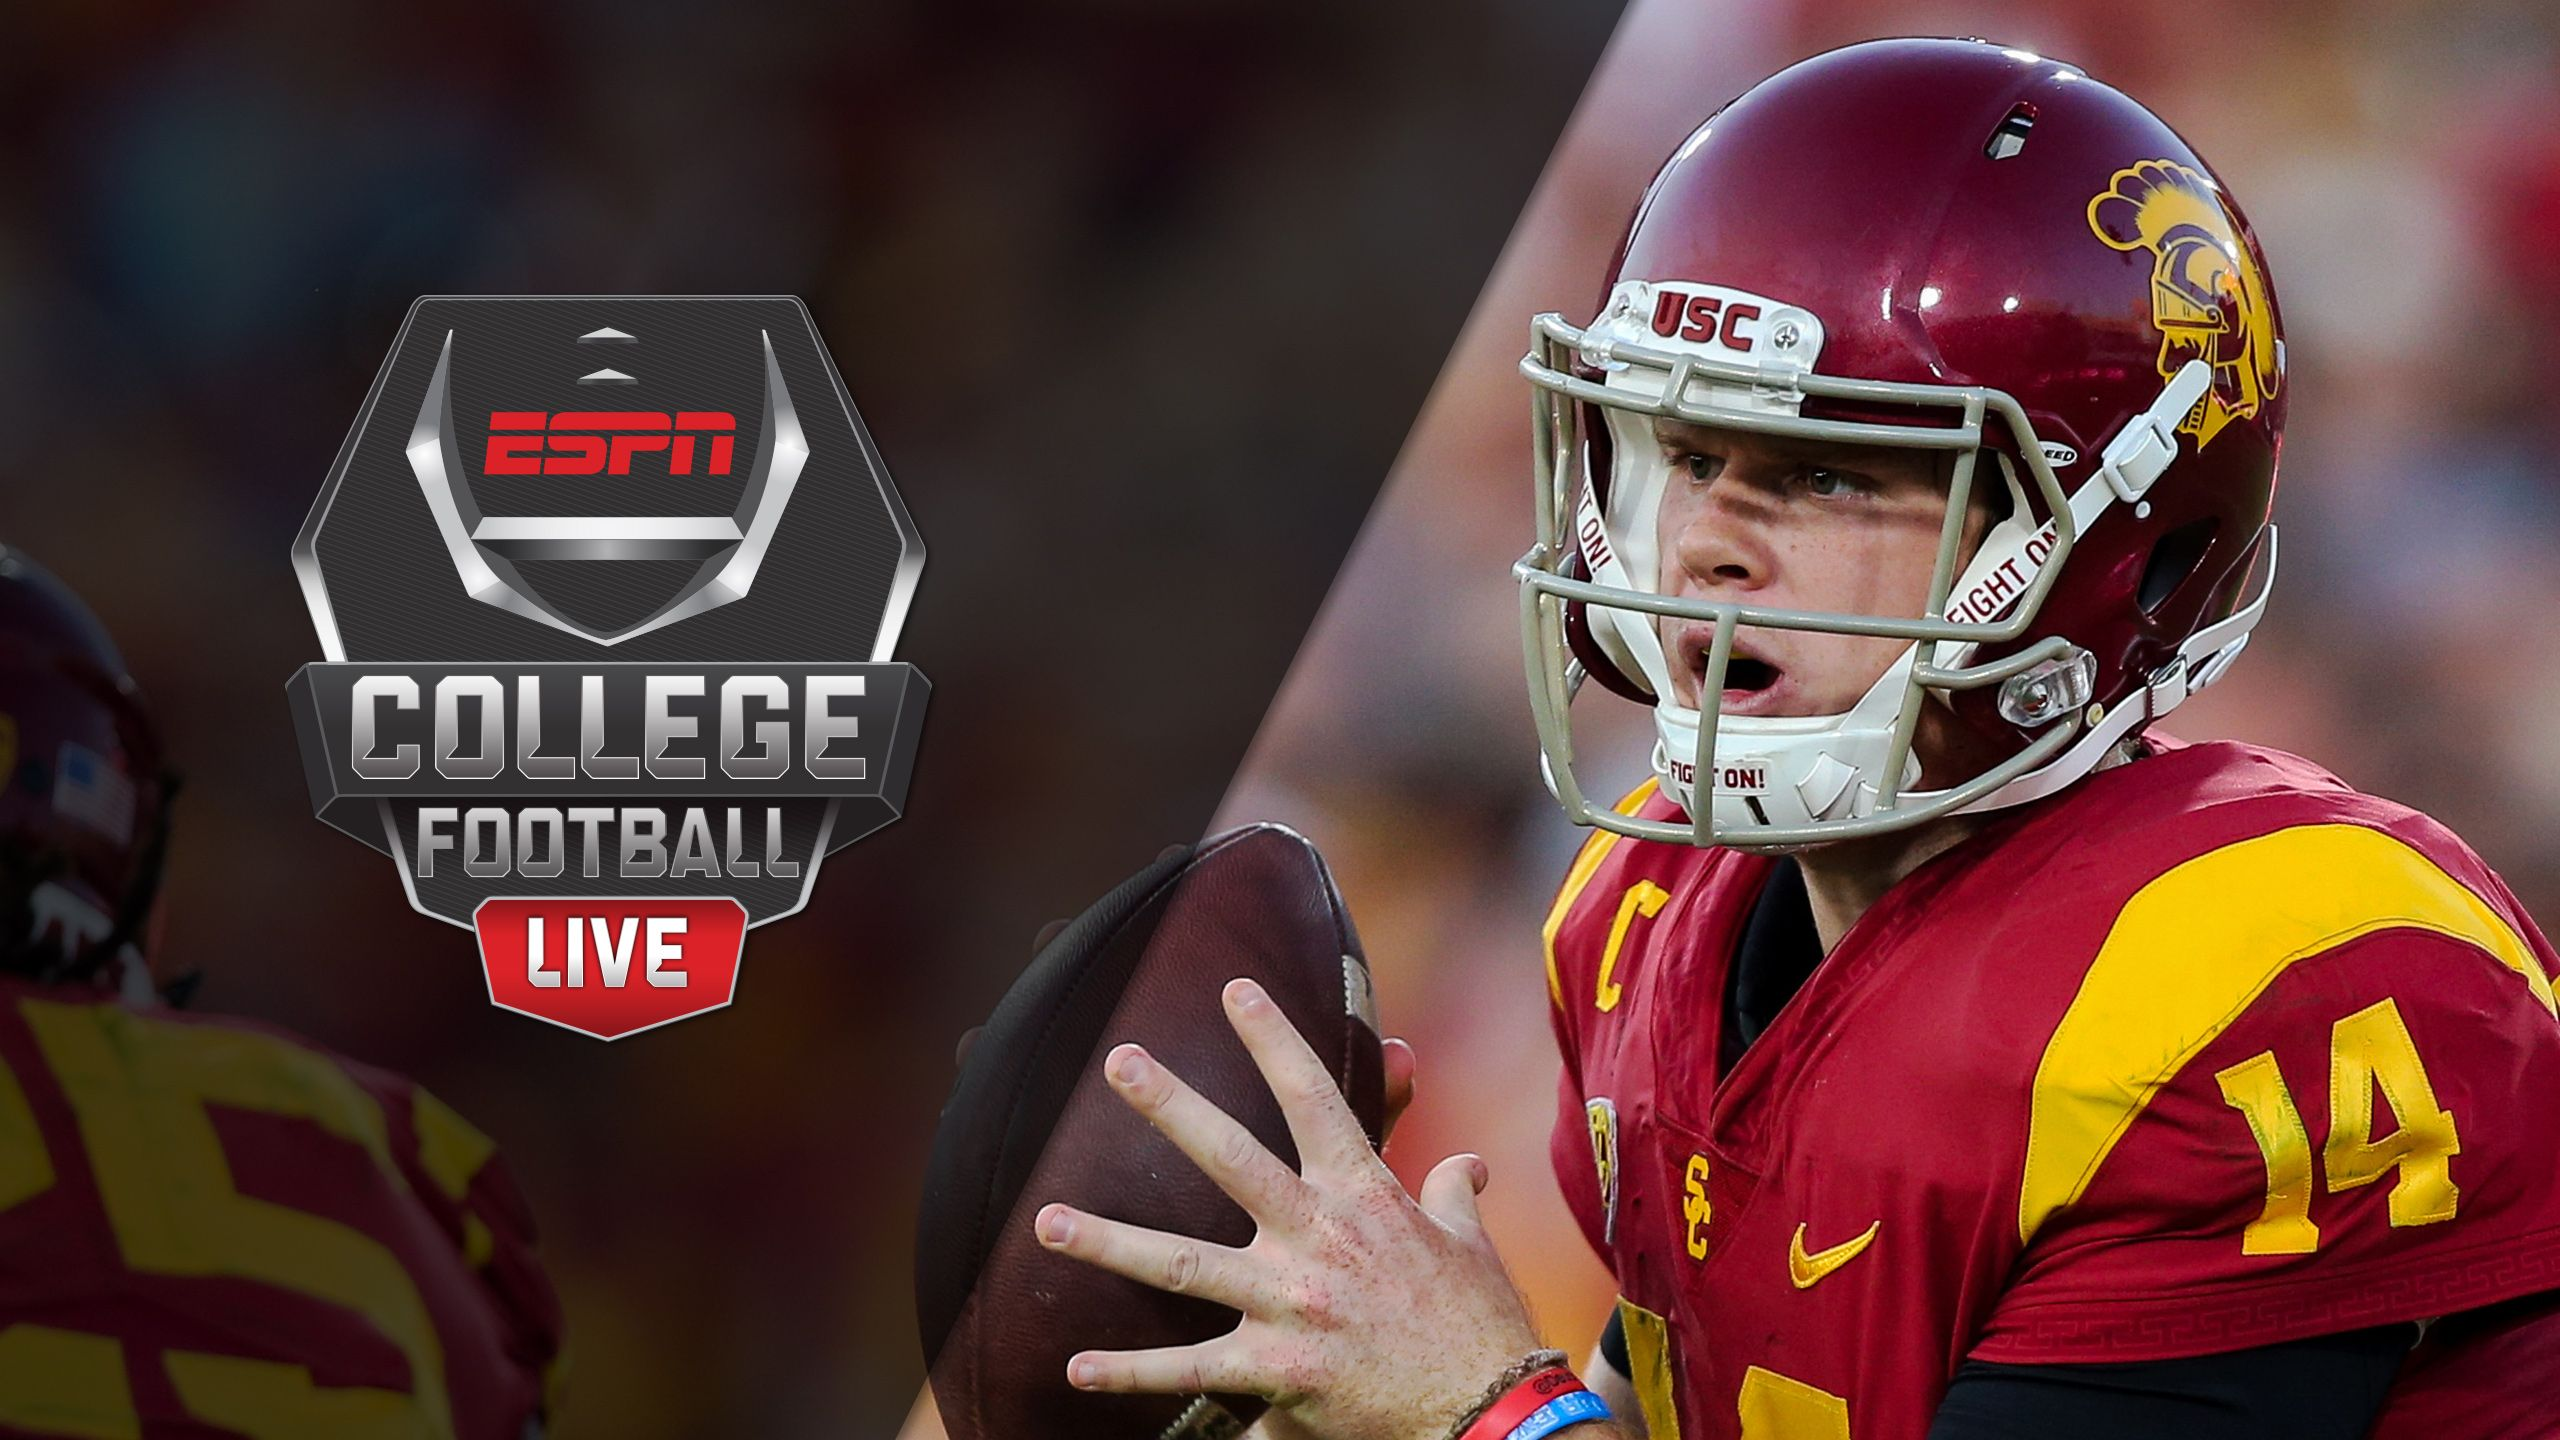 Wed, 10/18 - College Football Live